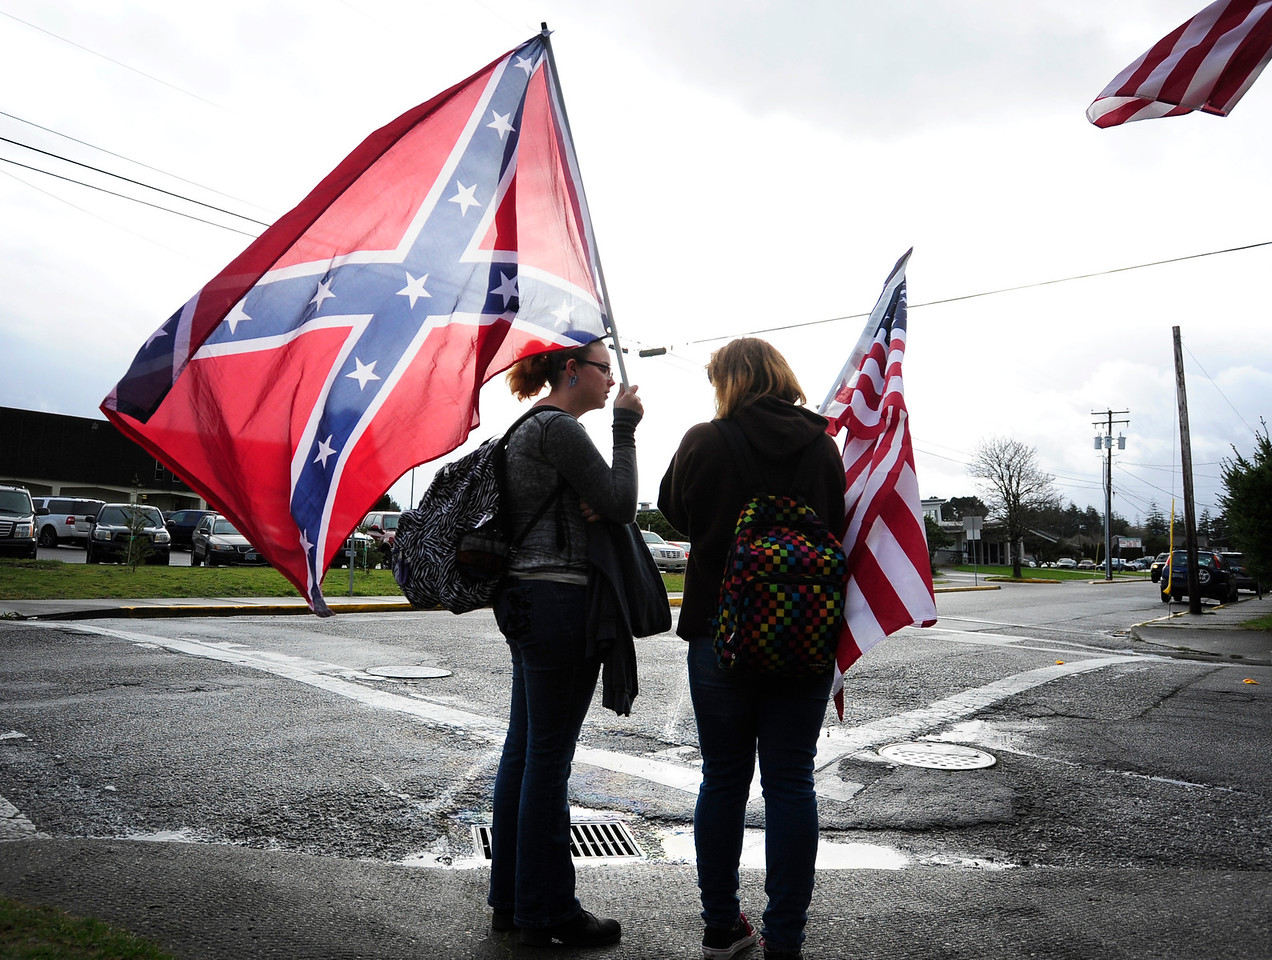 North Bend High School students Dallas Stockton, left, and Autumn Sisson protest outside the high school Monday morning after the district banned the flag widely associated with the slave-holding Confederate States of America.